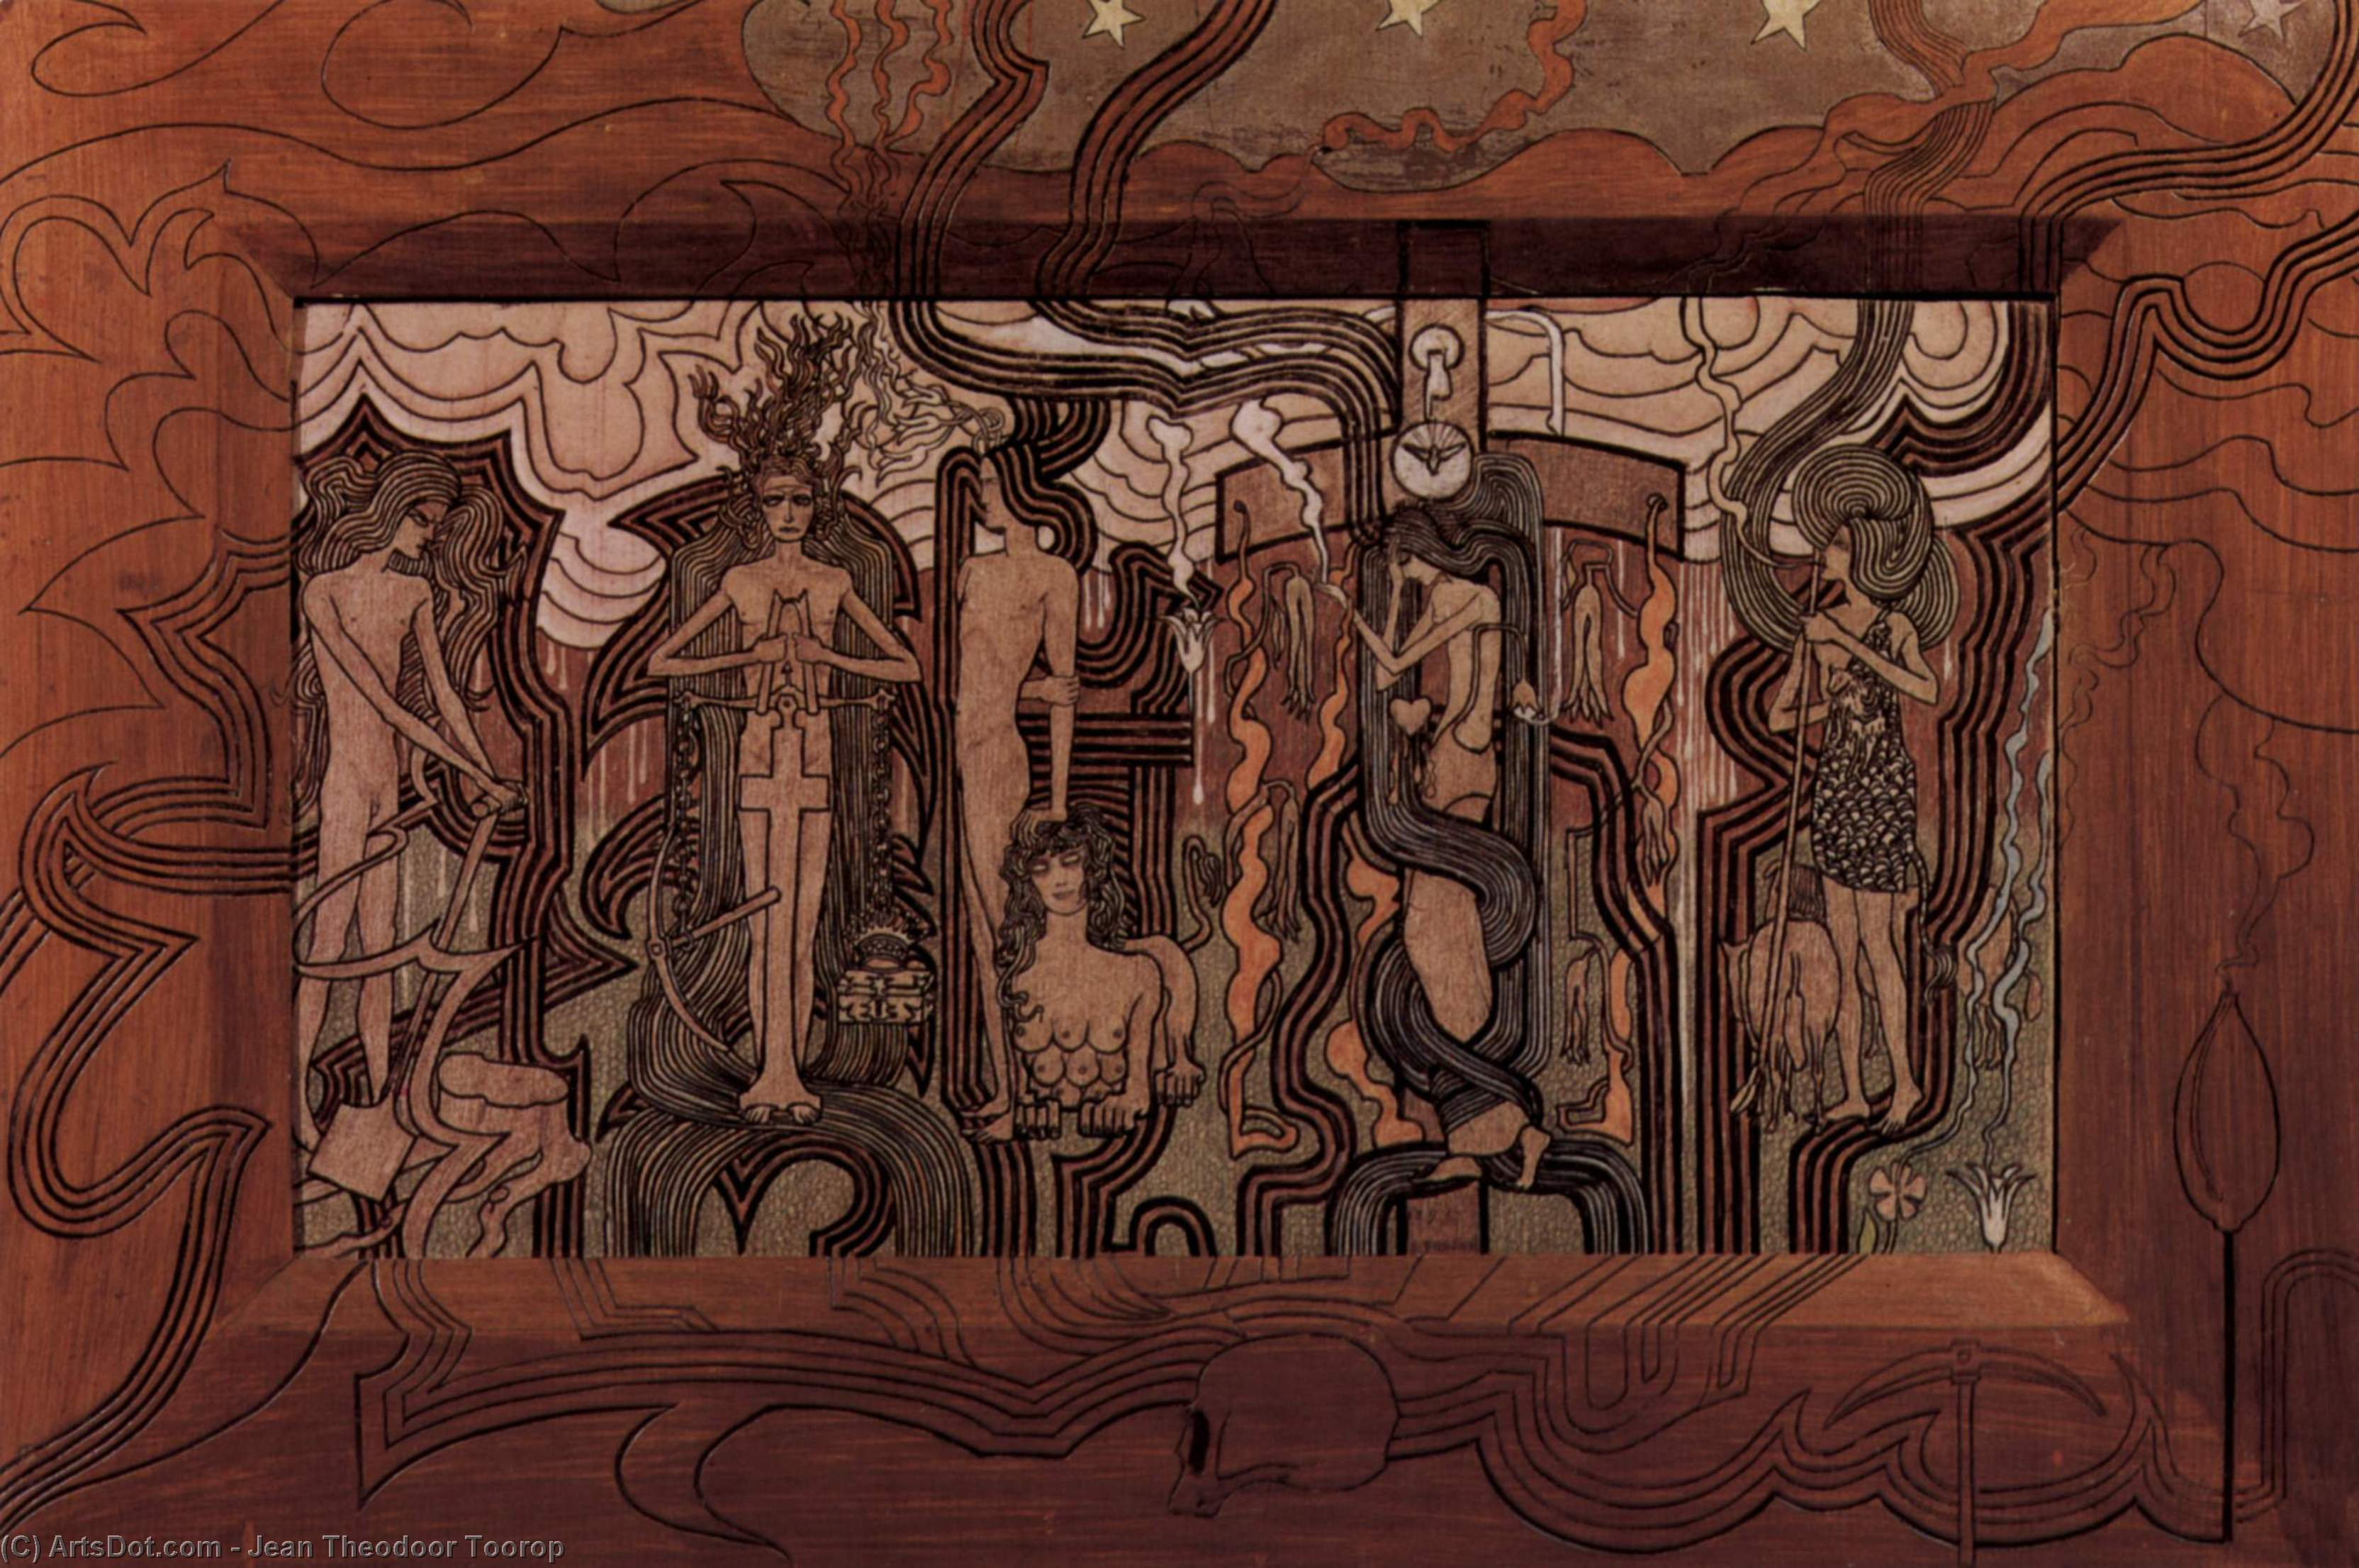 Song of the Times, 1893 by Jean Theodoor Toorop (1858-1928, Indonesia)